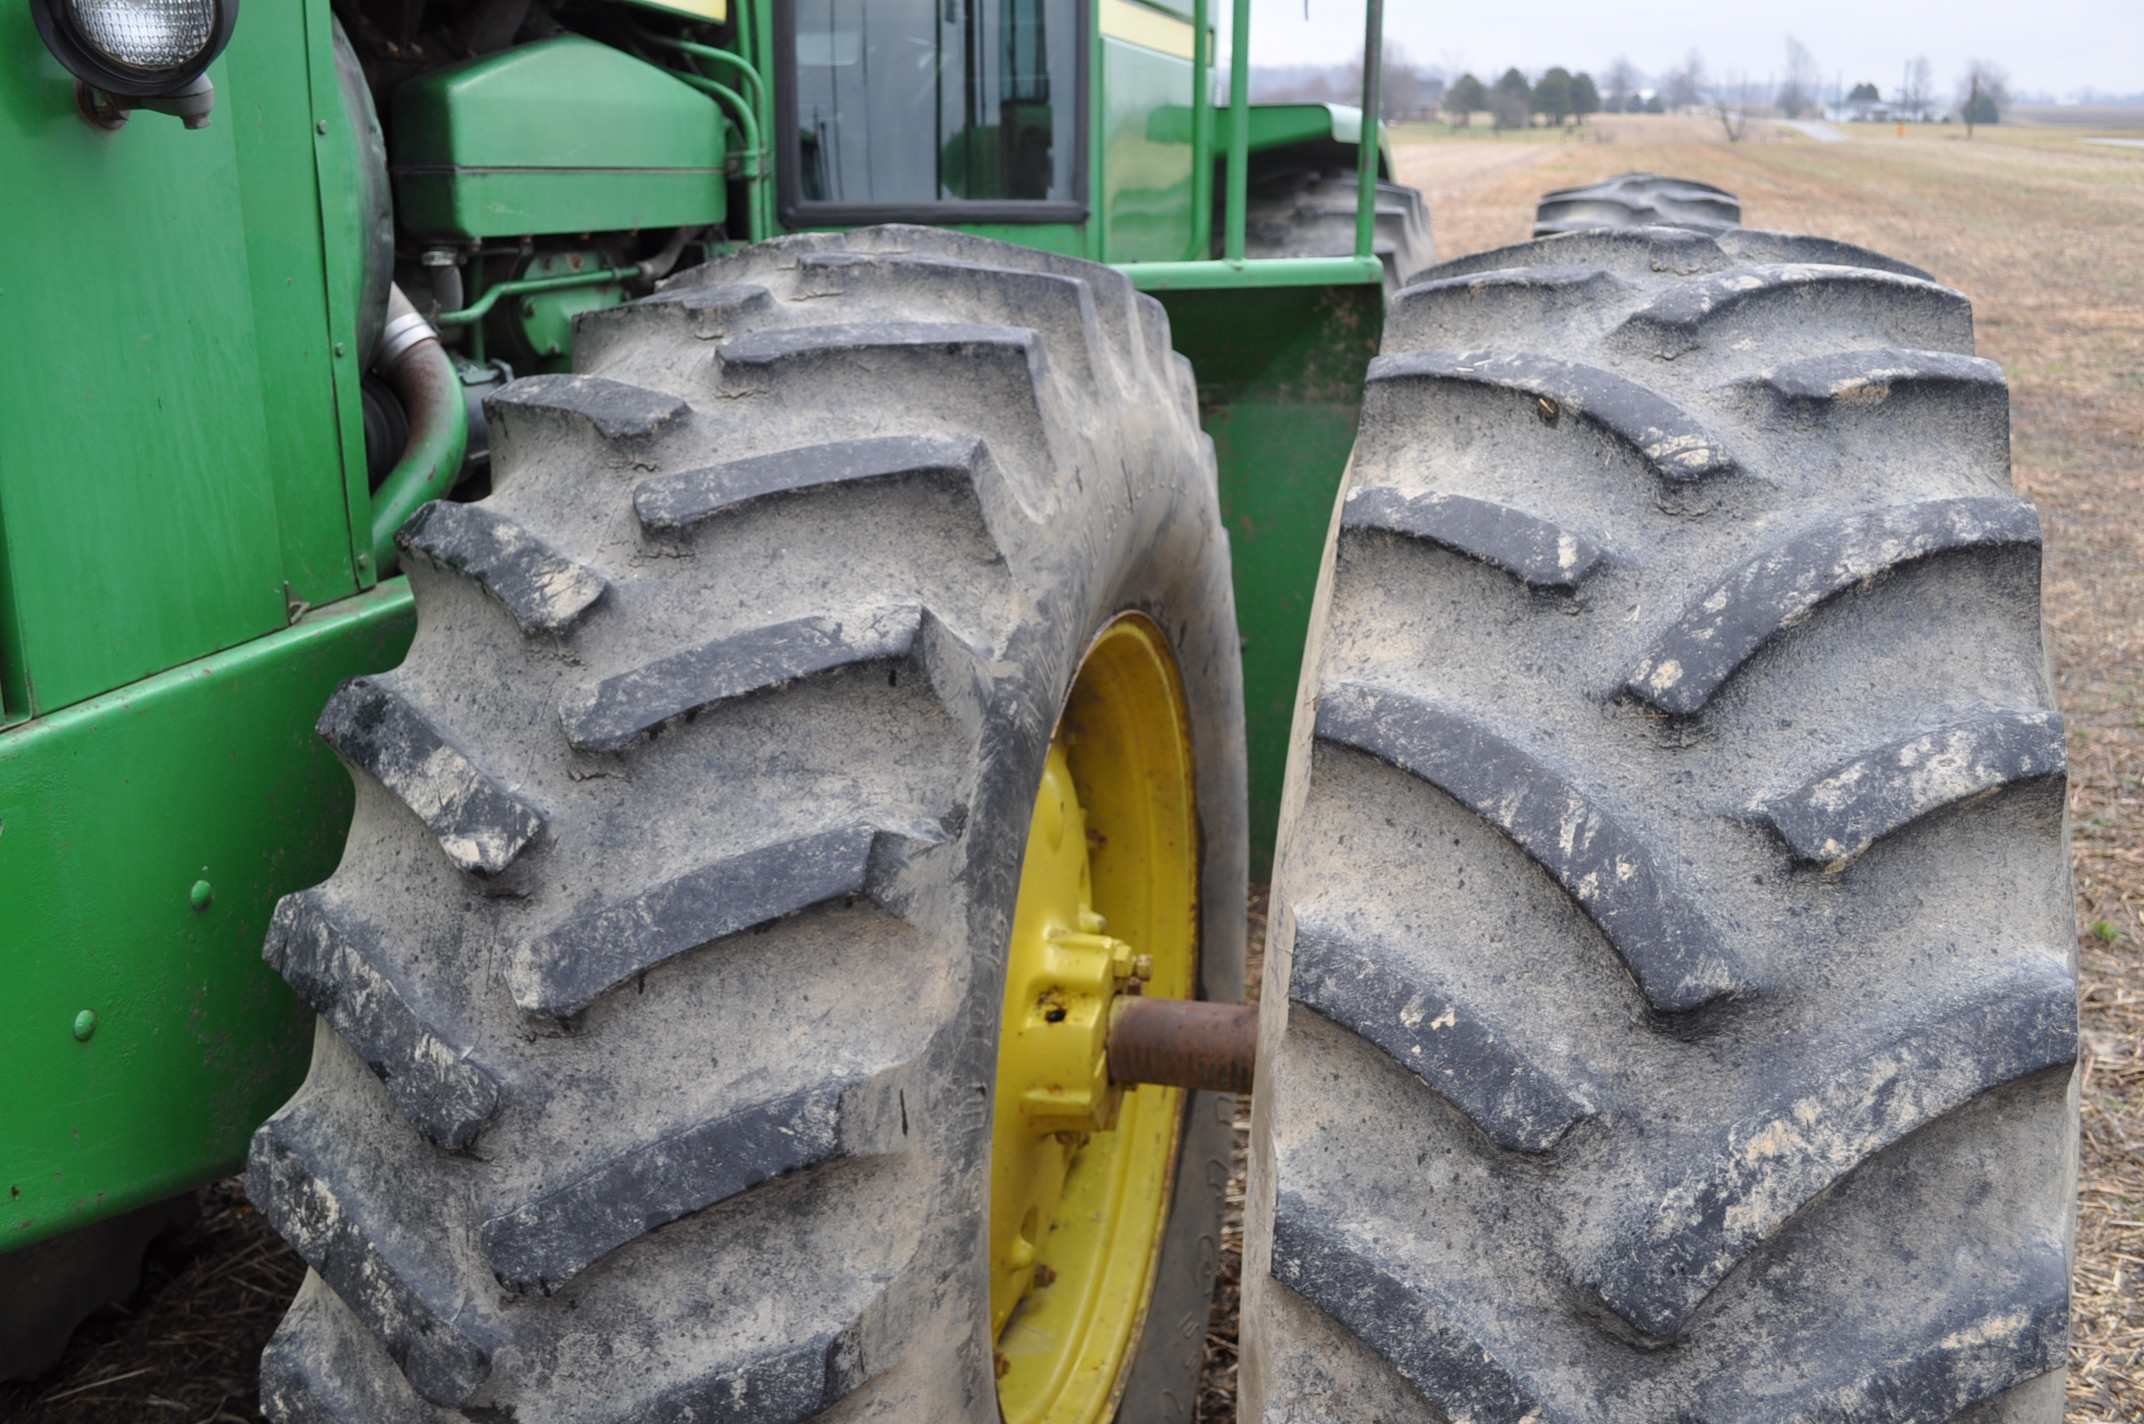 John Deere 8430 tractor, 4WD, diesel, 20.8-34 duals, CHA, Quad range, 3 hyd remotes, 1000 pto, 3 pt, - Image 5 of 19